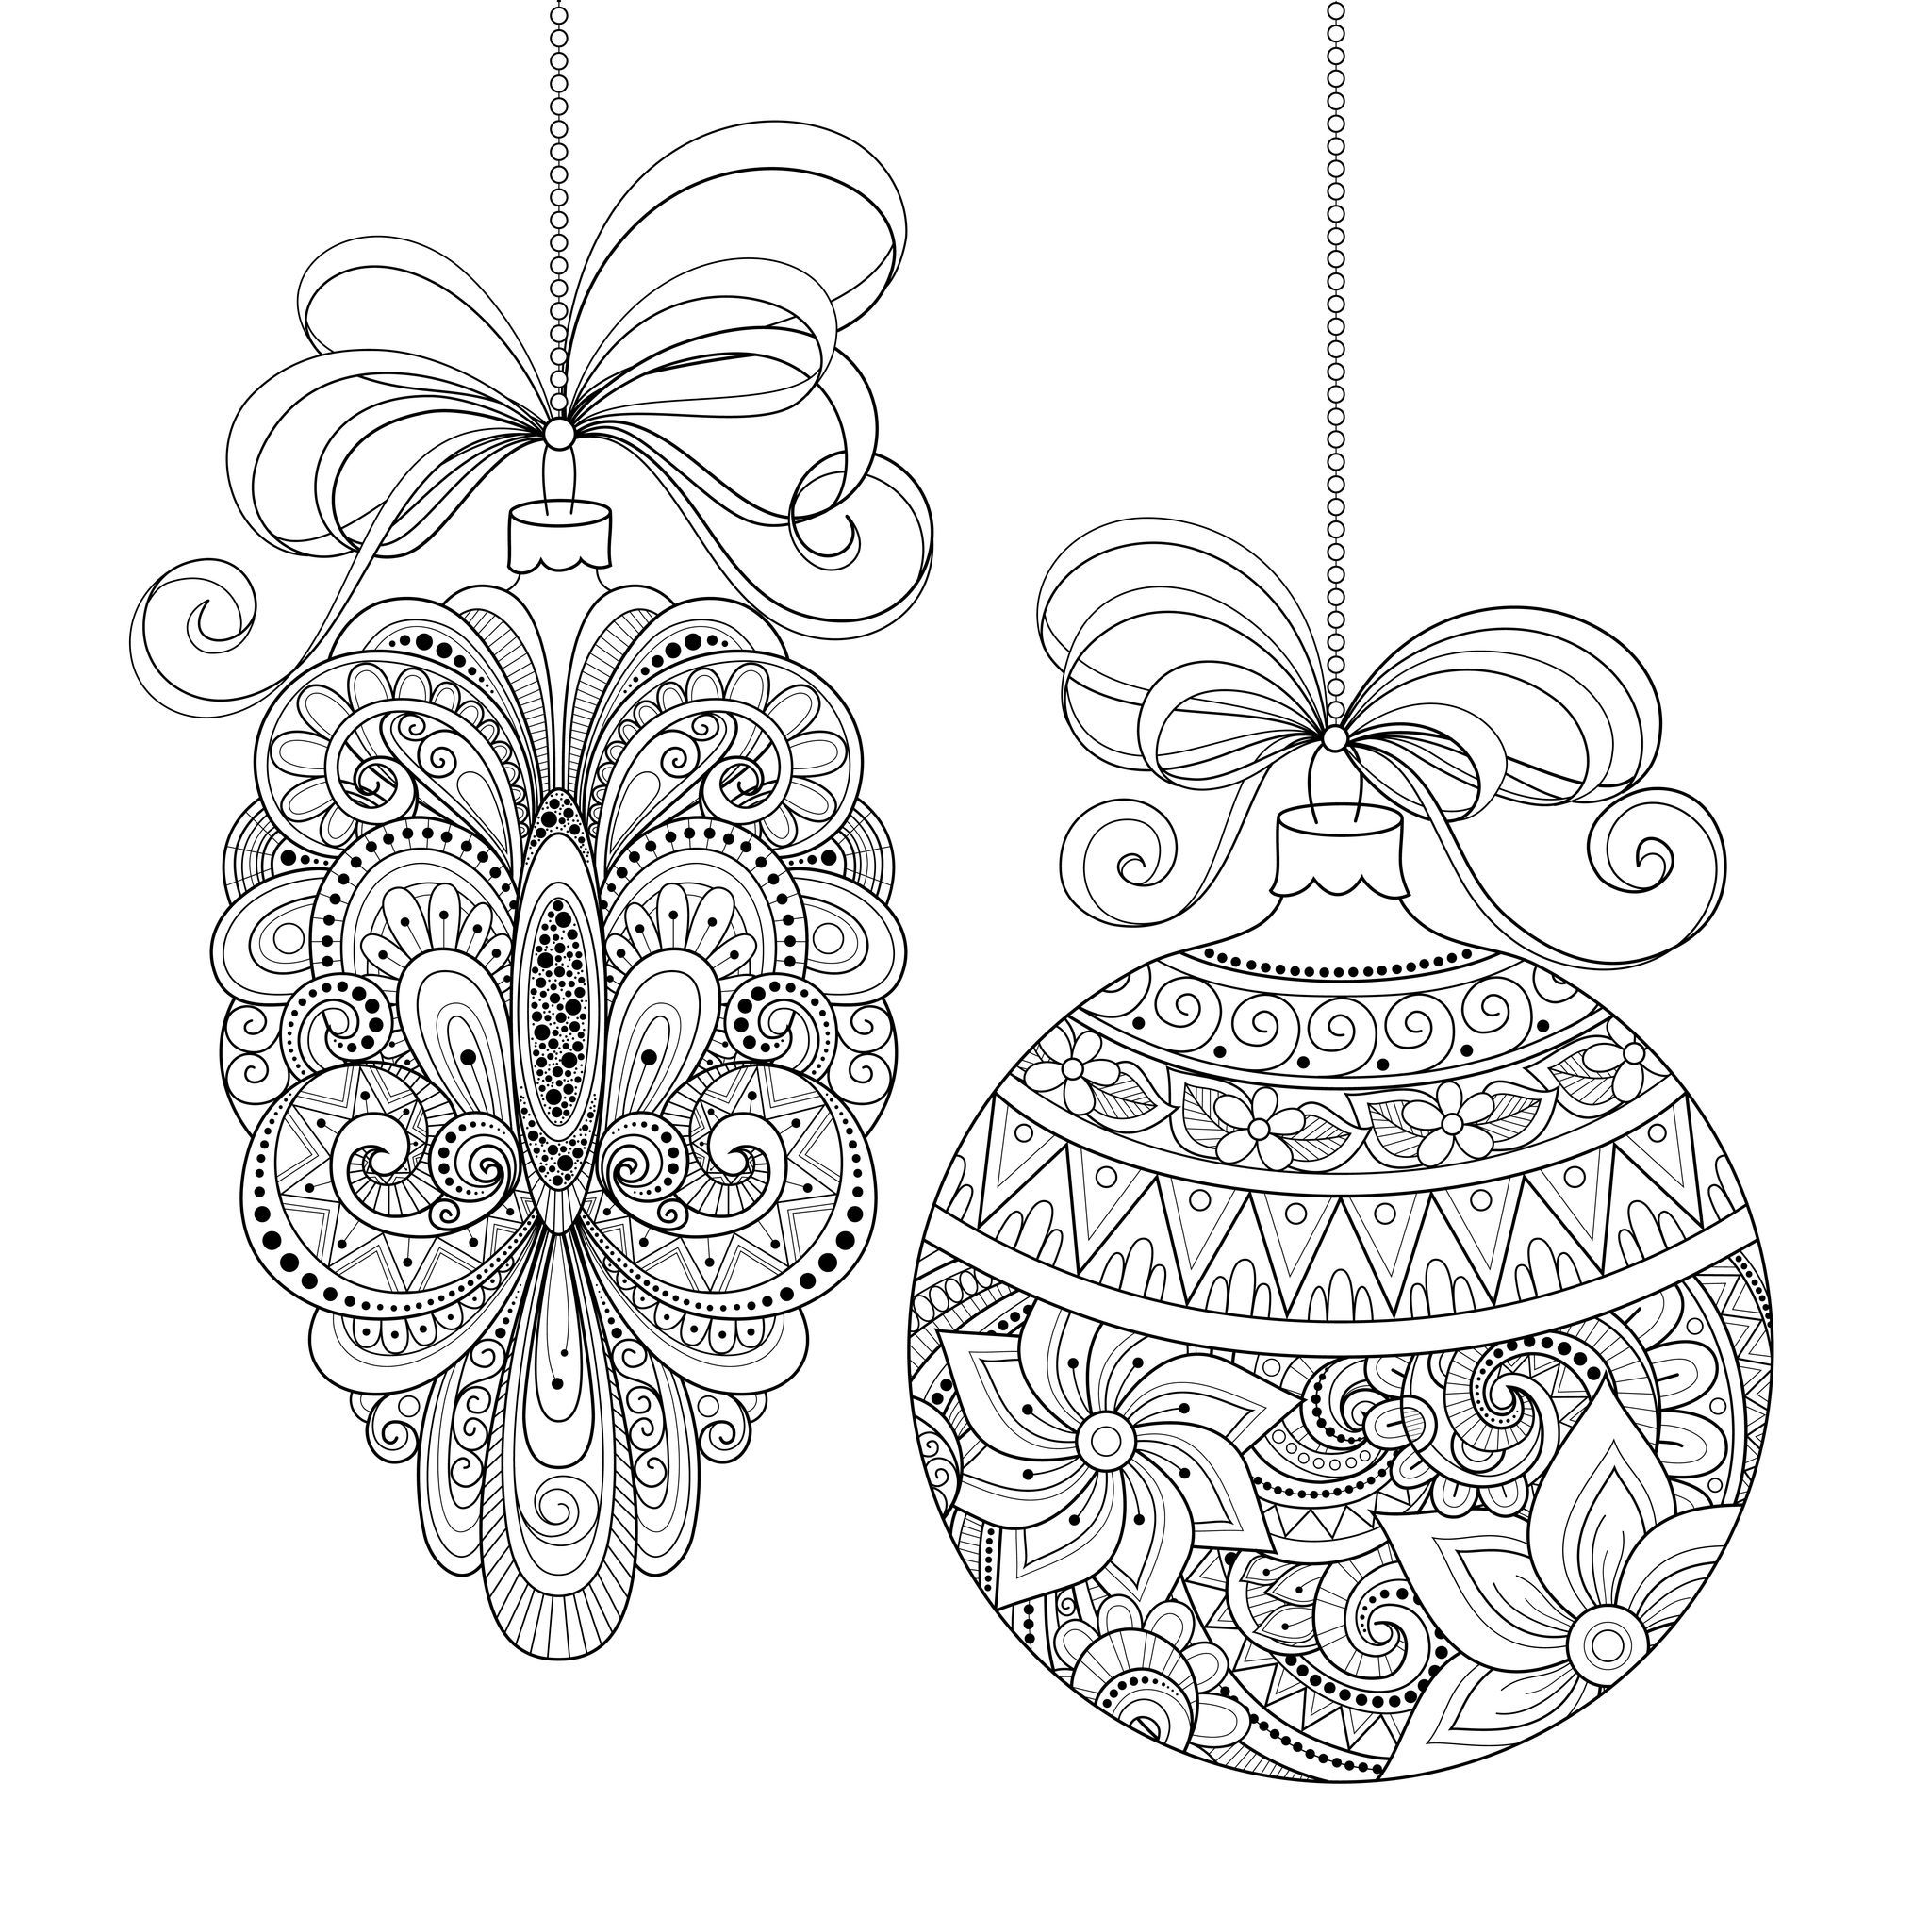 Christmas Coloring Pages Cards With Ornaments Use This Page To Make Your Own